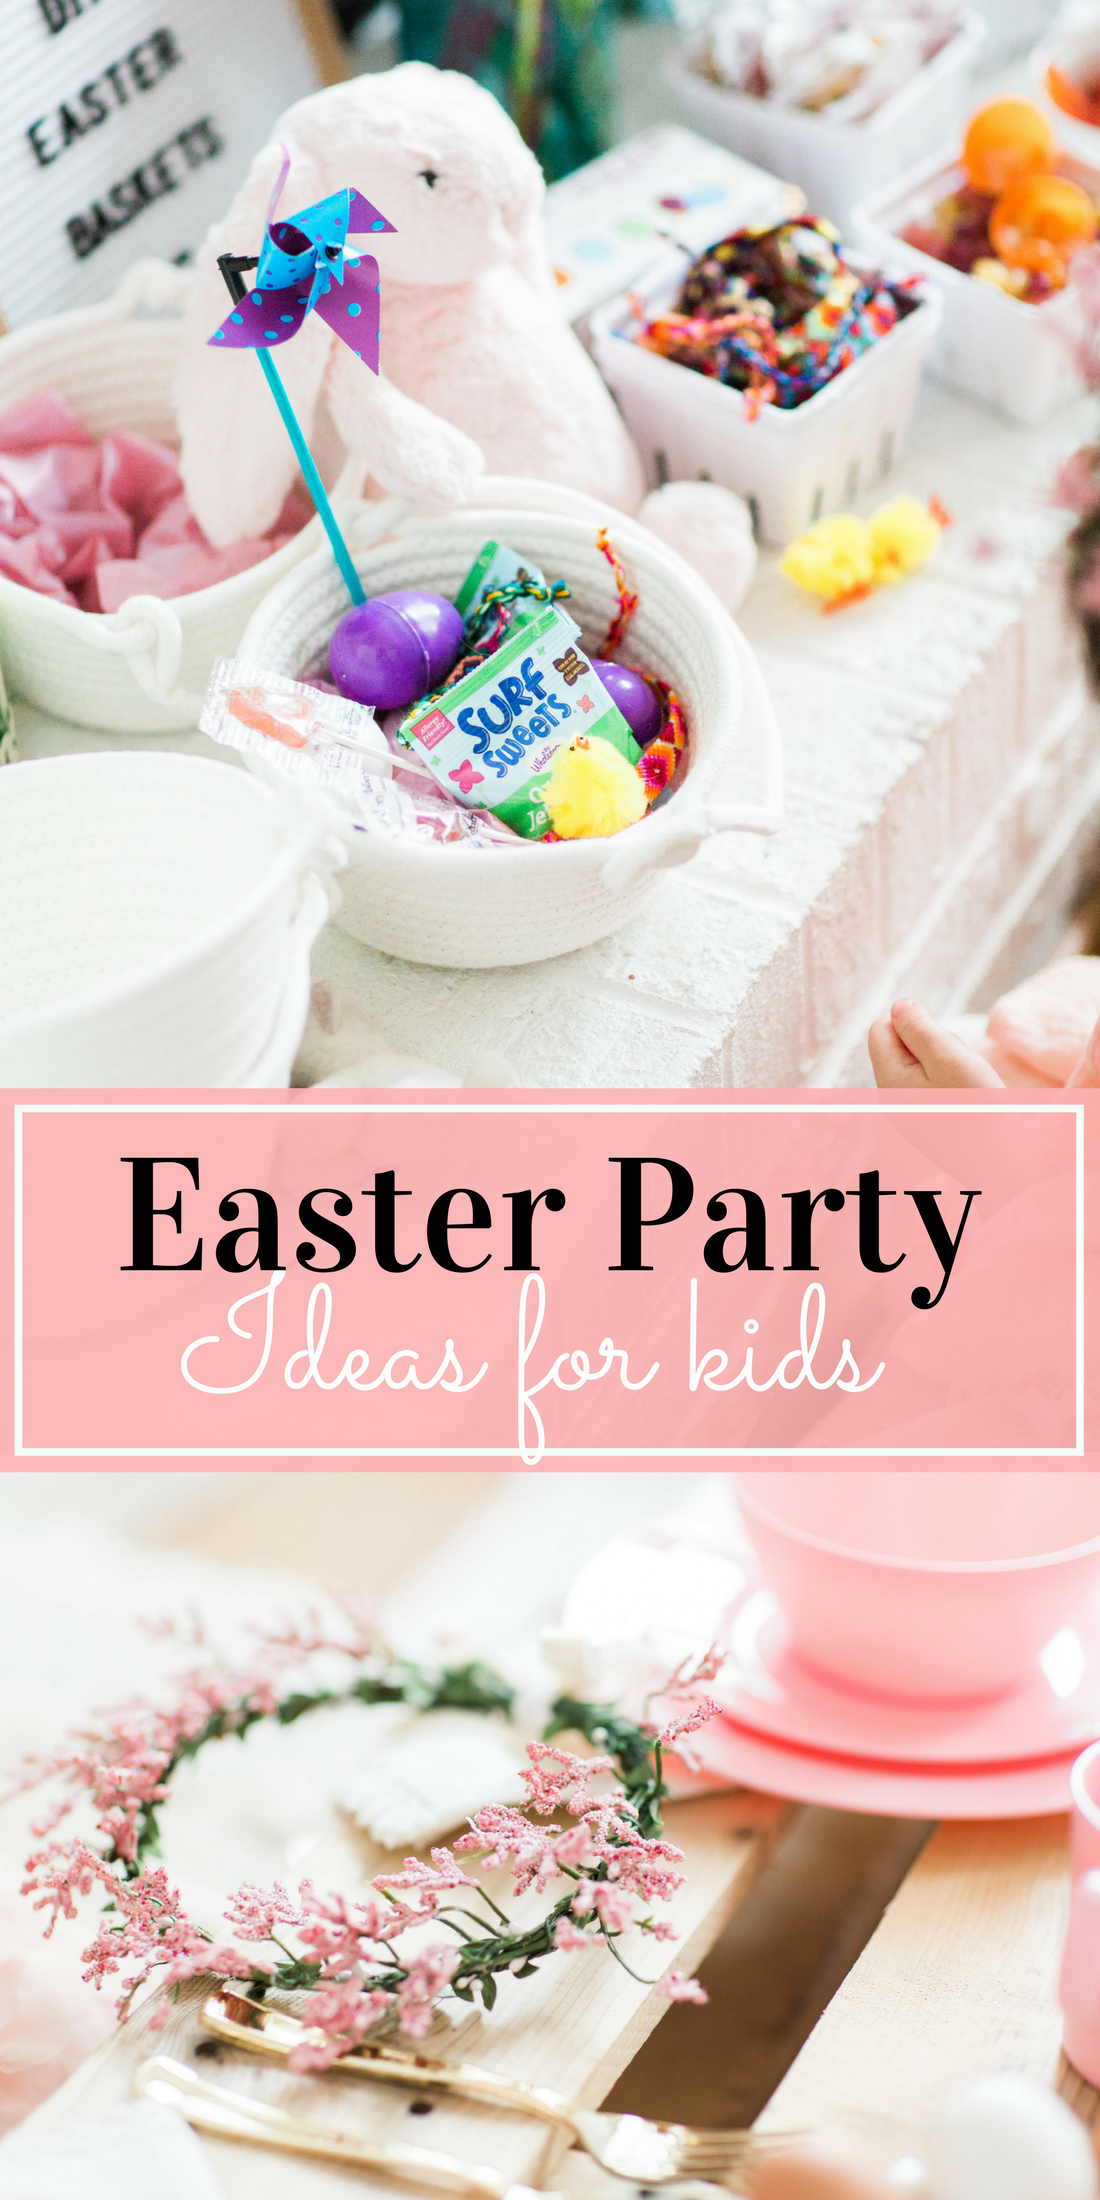 Looking for the sweetest Easter party for your little ones this Spring? This Some Bunny Loves You kids picnic Easter party has it all! | glitterinc.com | @glitterinc - Some Bunny Loves You Kids Picnic Easter Party by popular North Carolina lifestyle blogger Glitter, Inc.